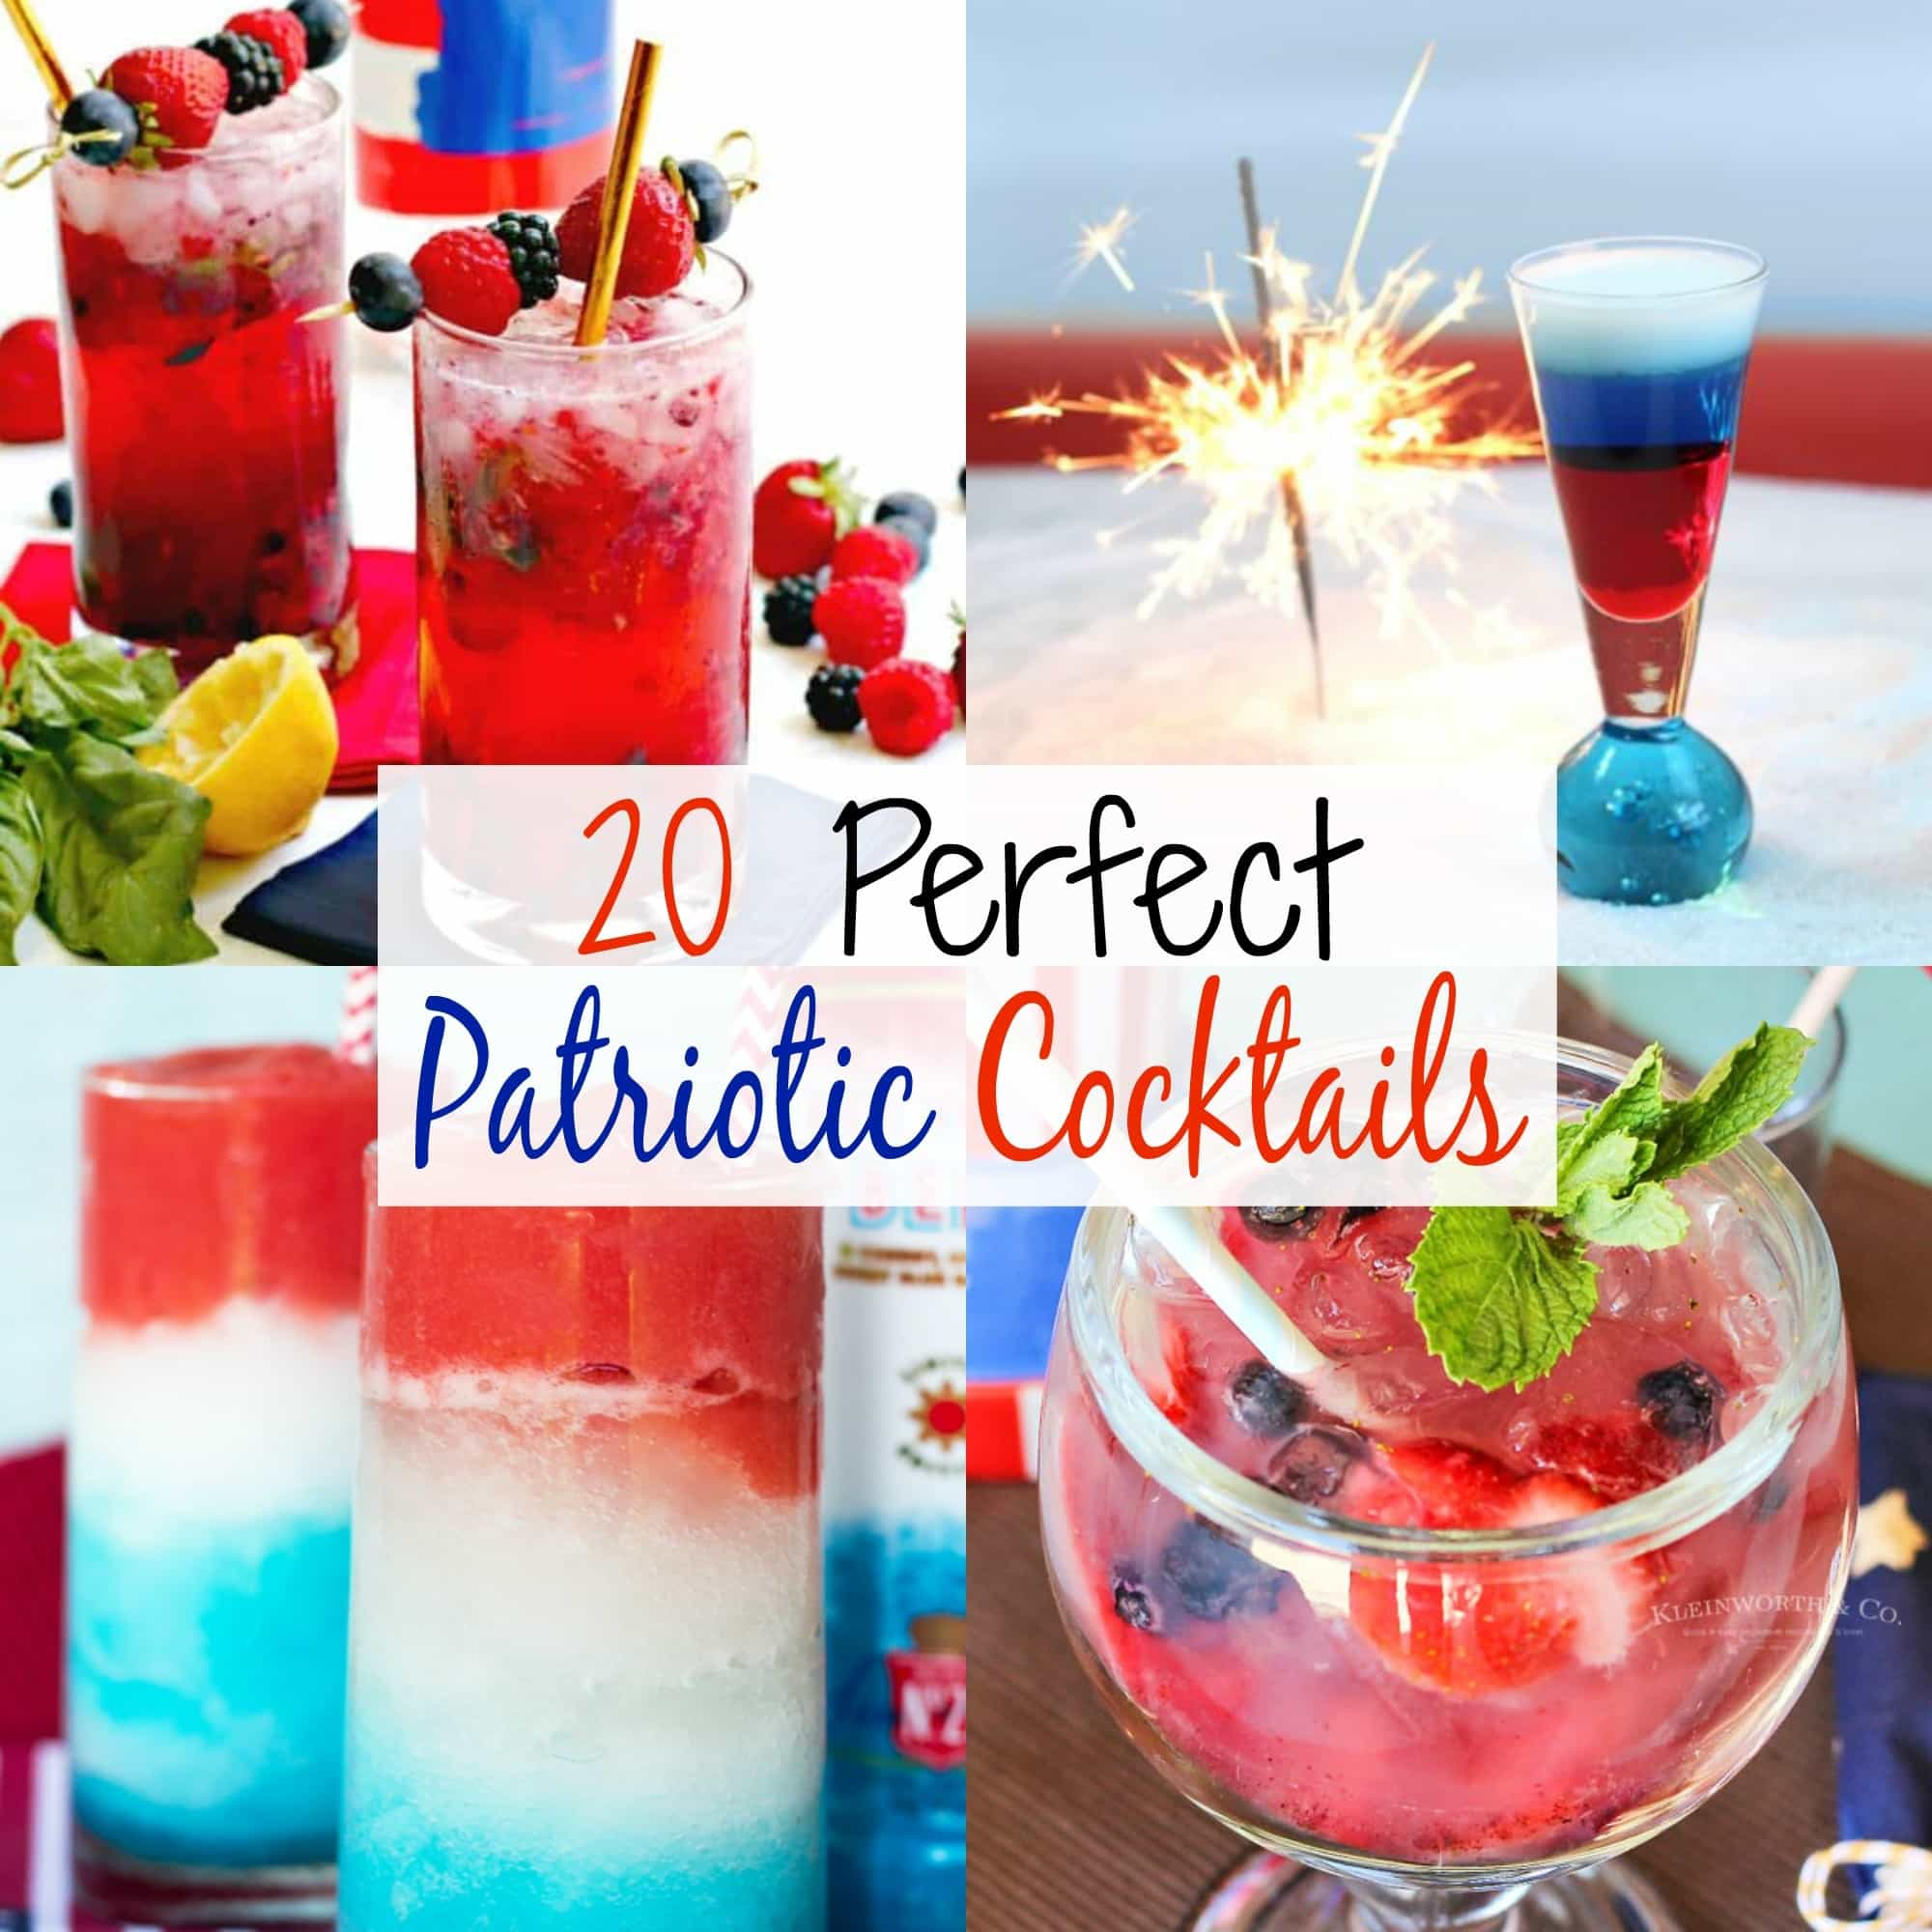 patriotic cocktails, red White and Blue